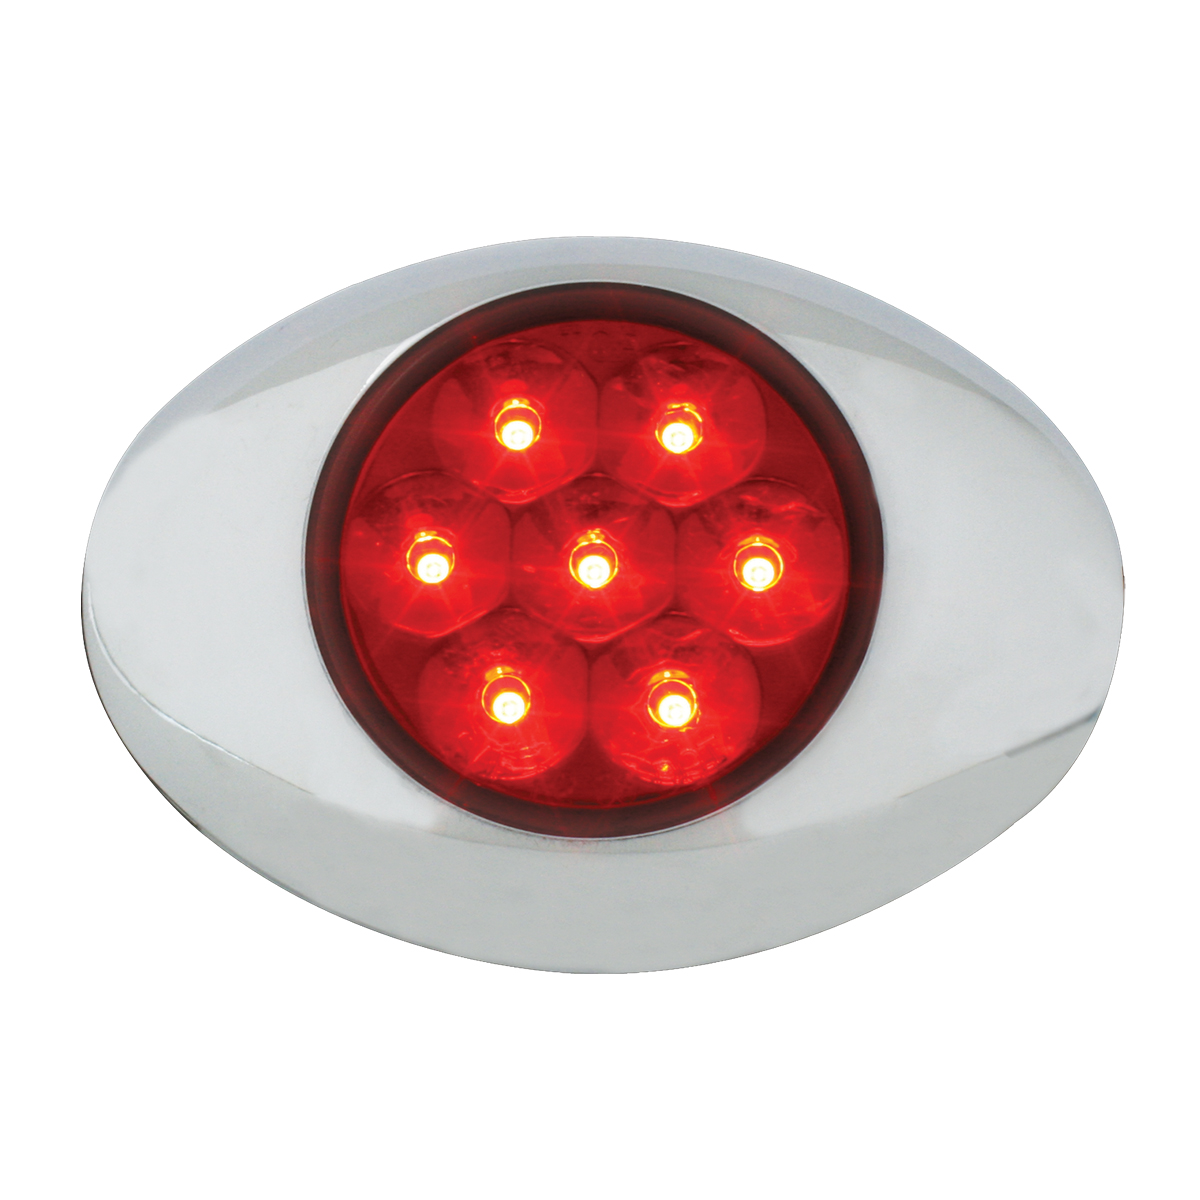 76237 Small Low Profile Surface Mount Pearl LED Marker & Turn Light w/ Chrome Bezel